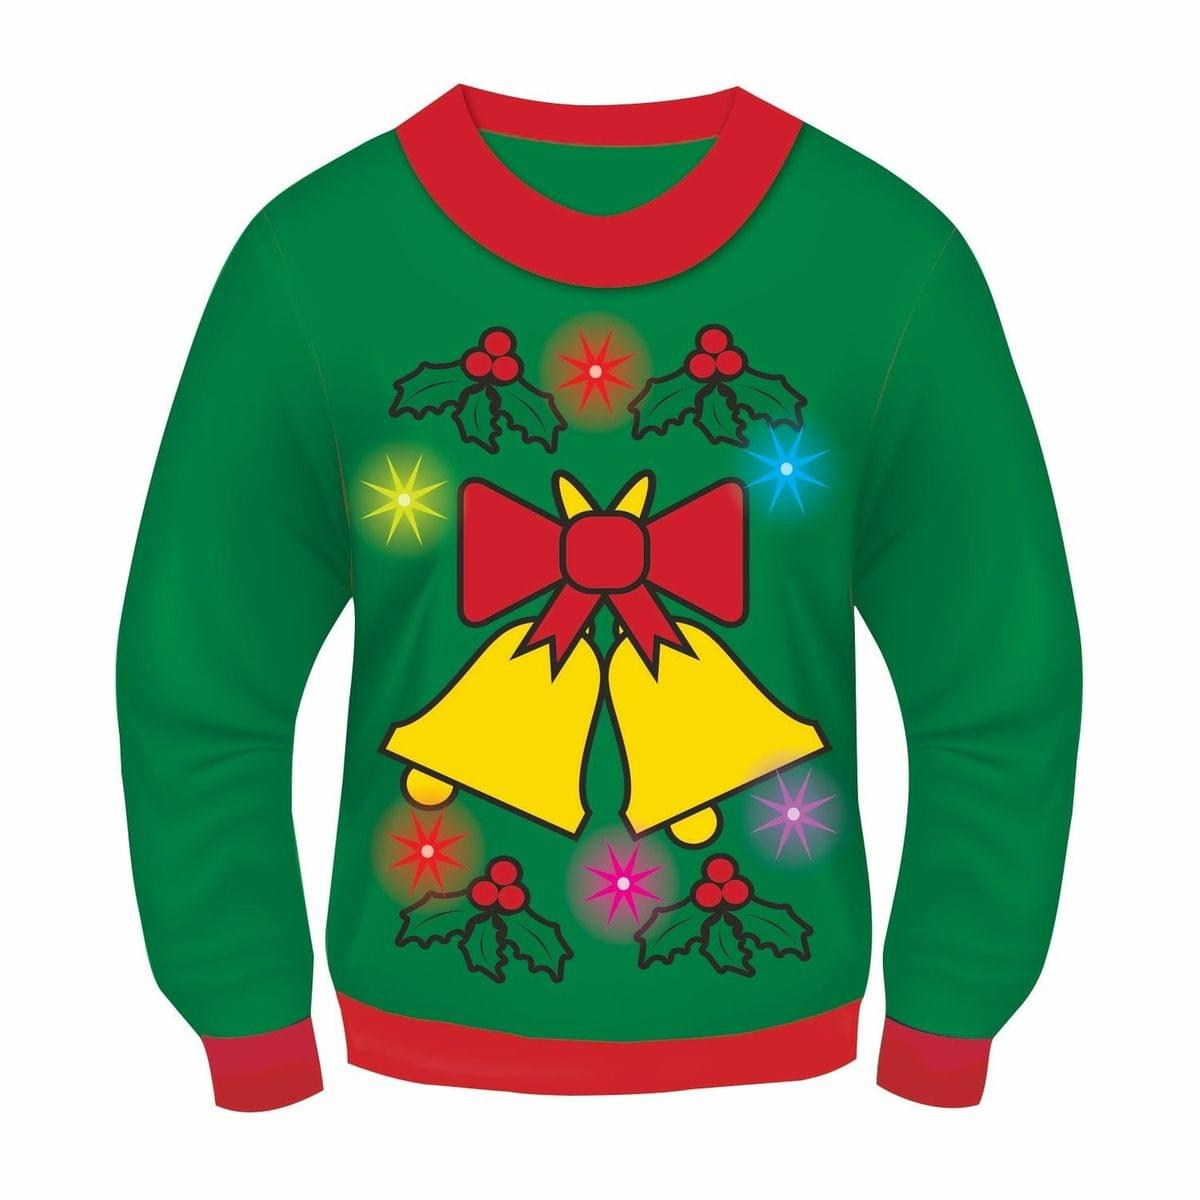 Green Musical Light-Up Jingle Bells Adult Ugly Christmas Sweater Medium